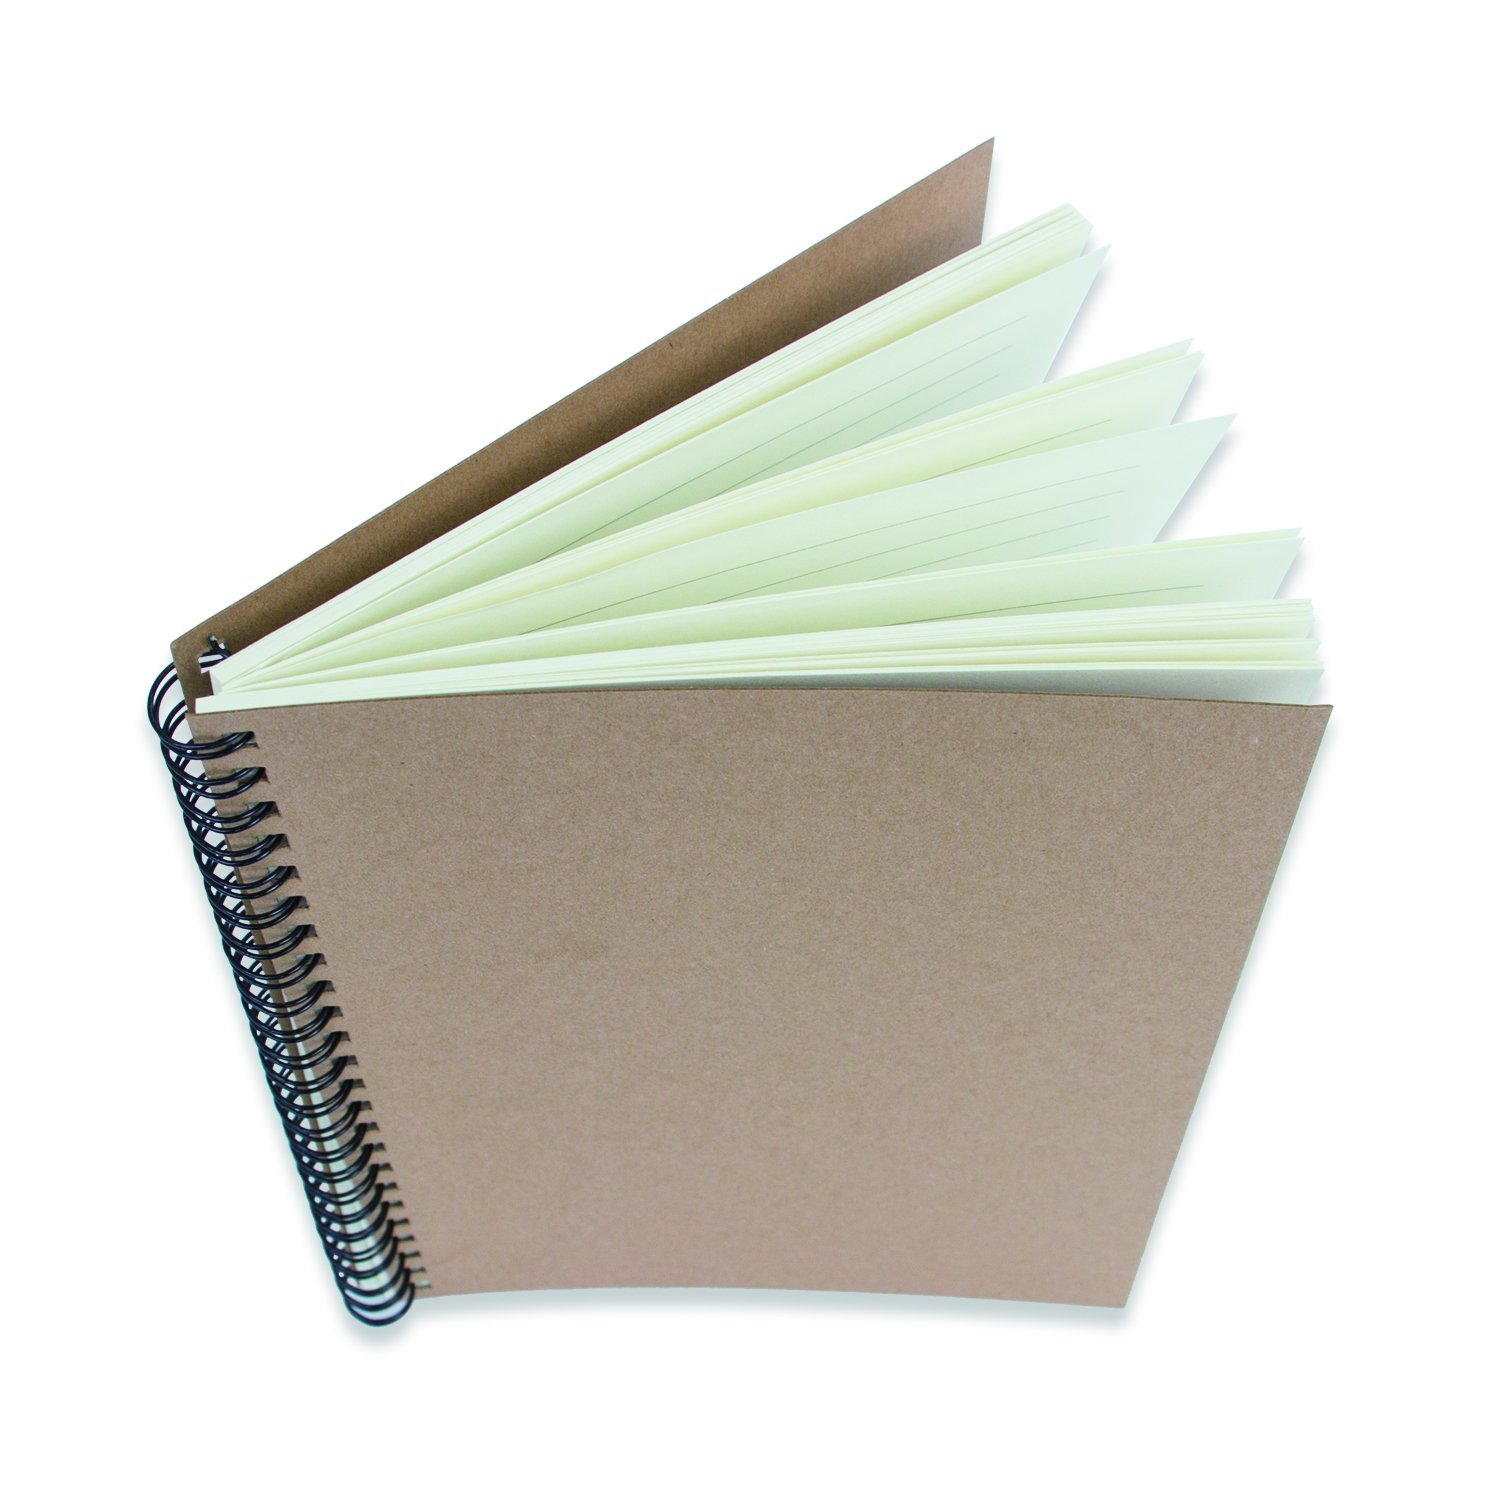 Kraft Paper Cover Notebooks Spiral Notebooks (A5 Size, Set of 3) (Cartwheel Double Iron Ring) by Luck'y stores (Image #2)